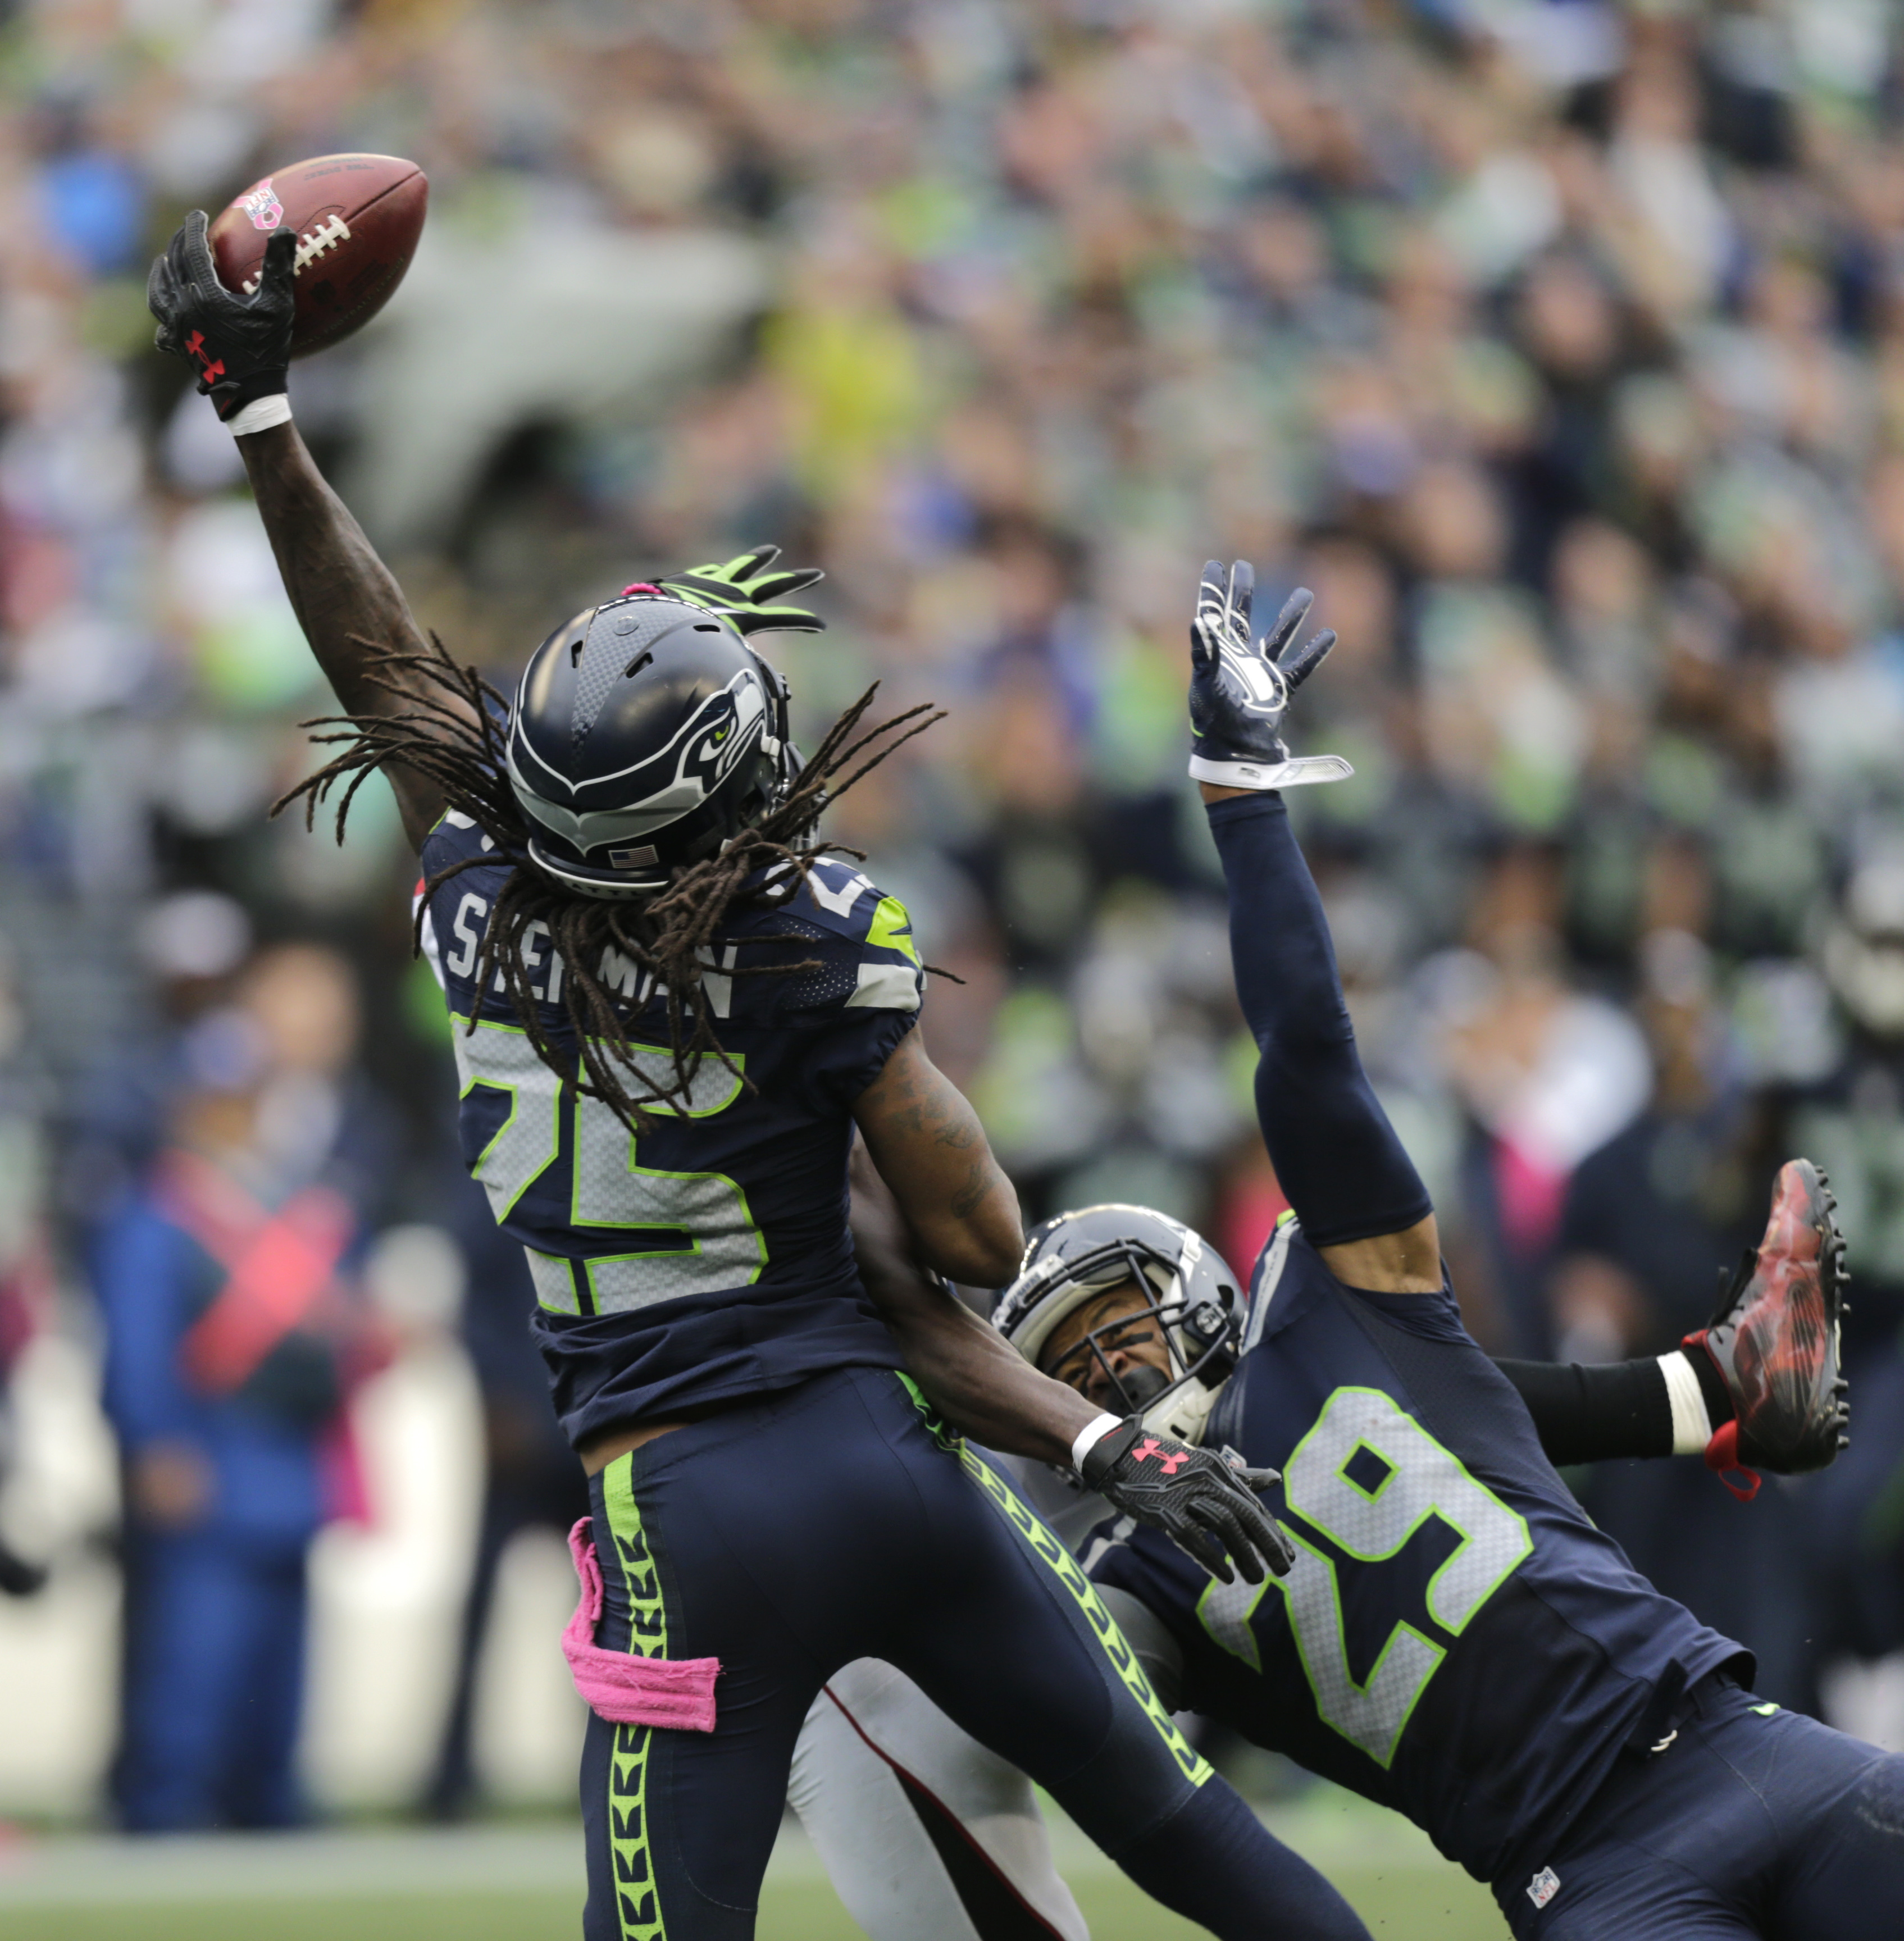 FILE -  In this Sunday, Oct. 16, 2016 file photo, Seattle Seahawks cornerback Richard Sherman (25) and Earl Thomas (29) break up a pass intended for Atlanta Falcons wide receiver Julio Jones in the second half of an NFL football game, in Seattle. The duo